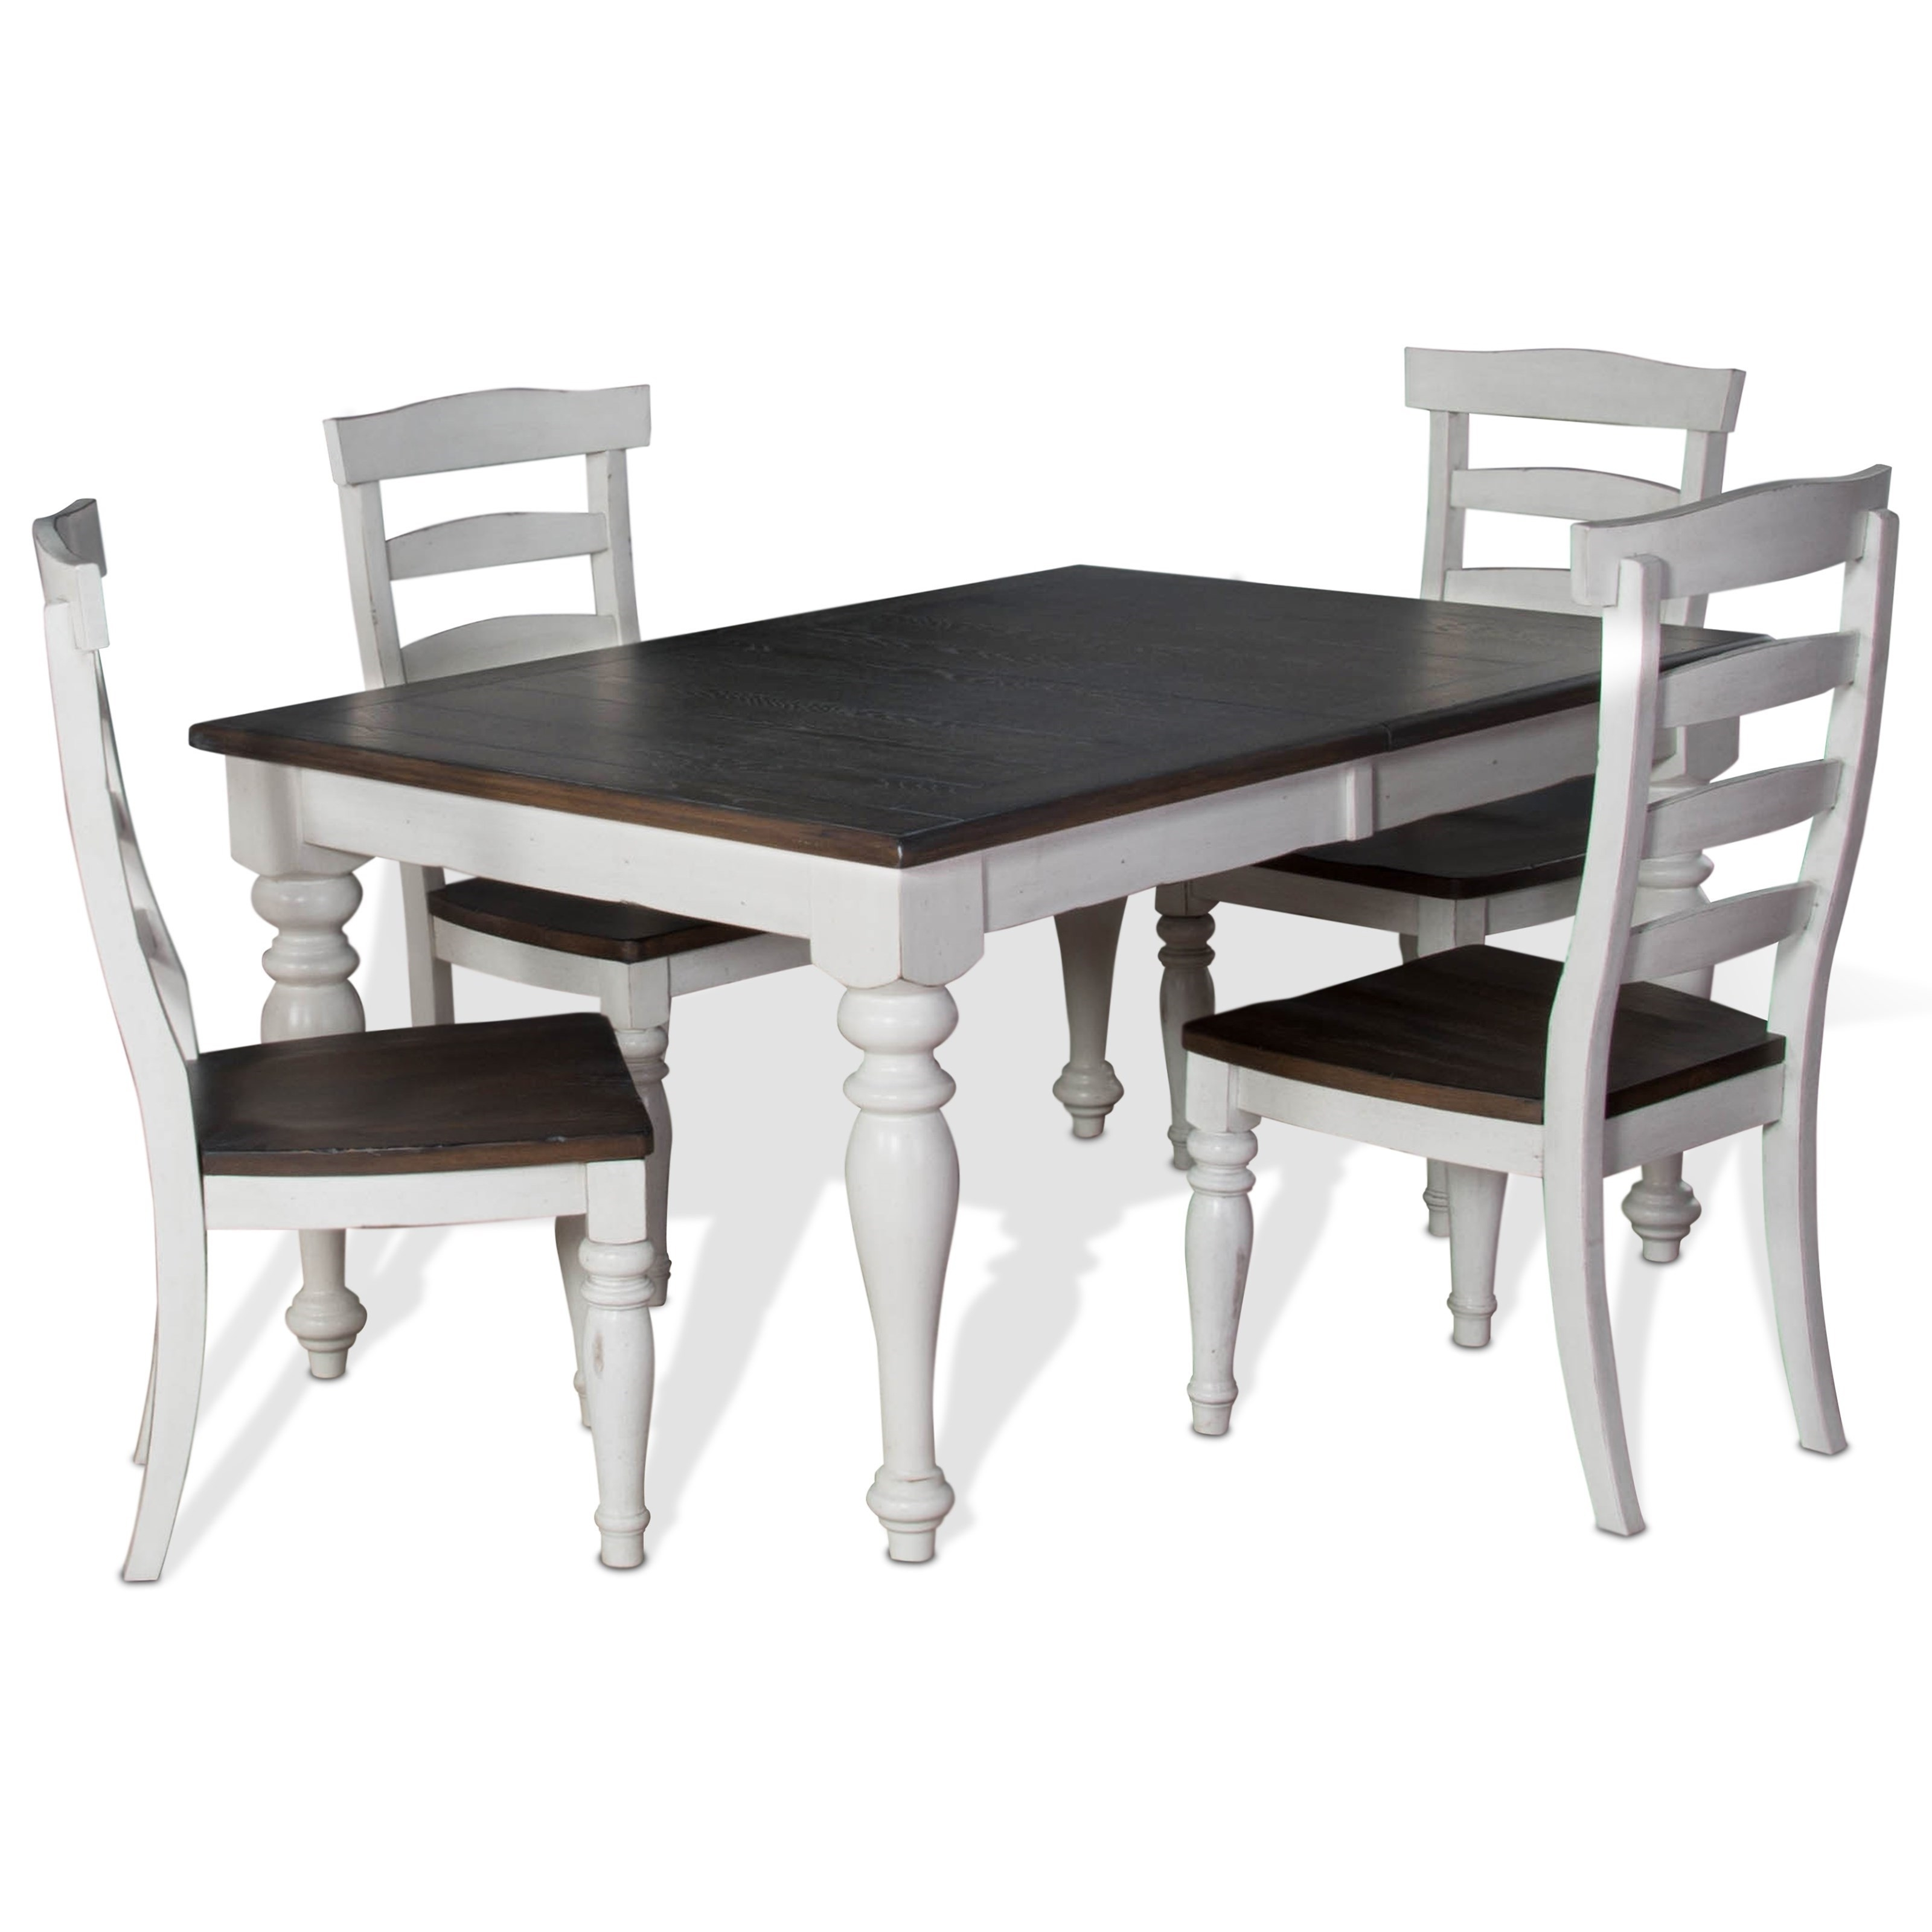 5 Piece Extension Dining Table Set With Ladderback Chairssunny Regarding Preferred Craftsman 7 Piece Rectangle Extension Dining Sets With Side Chairs (View 1 of 25)